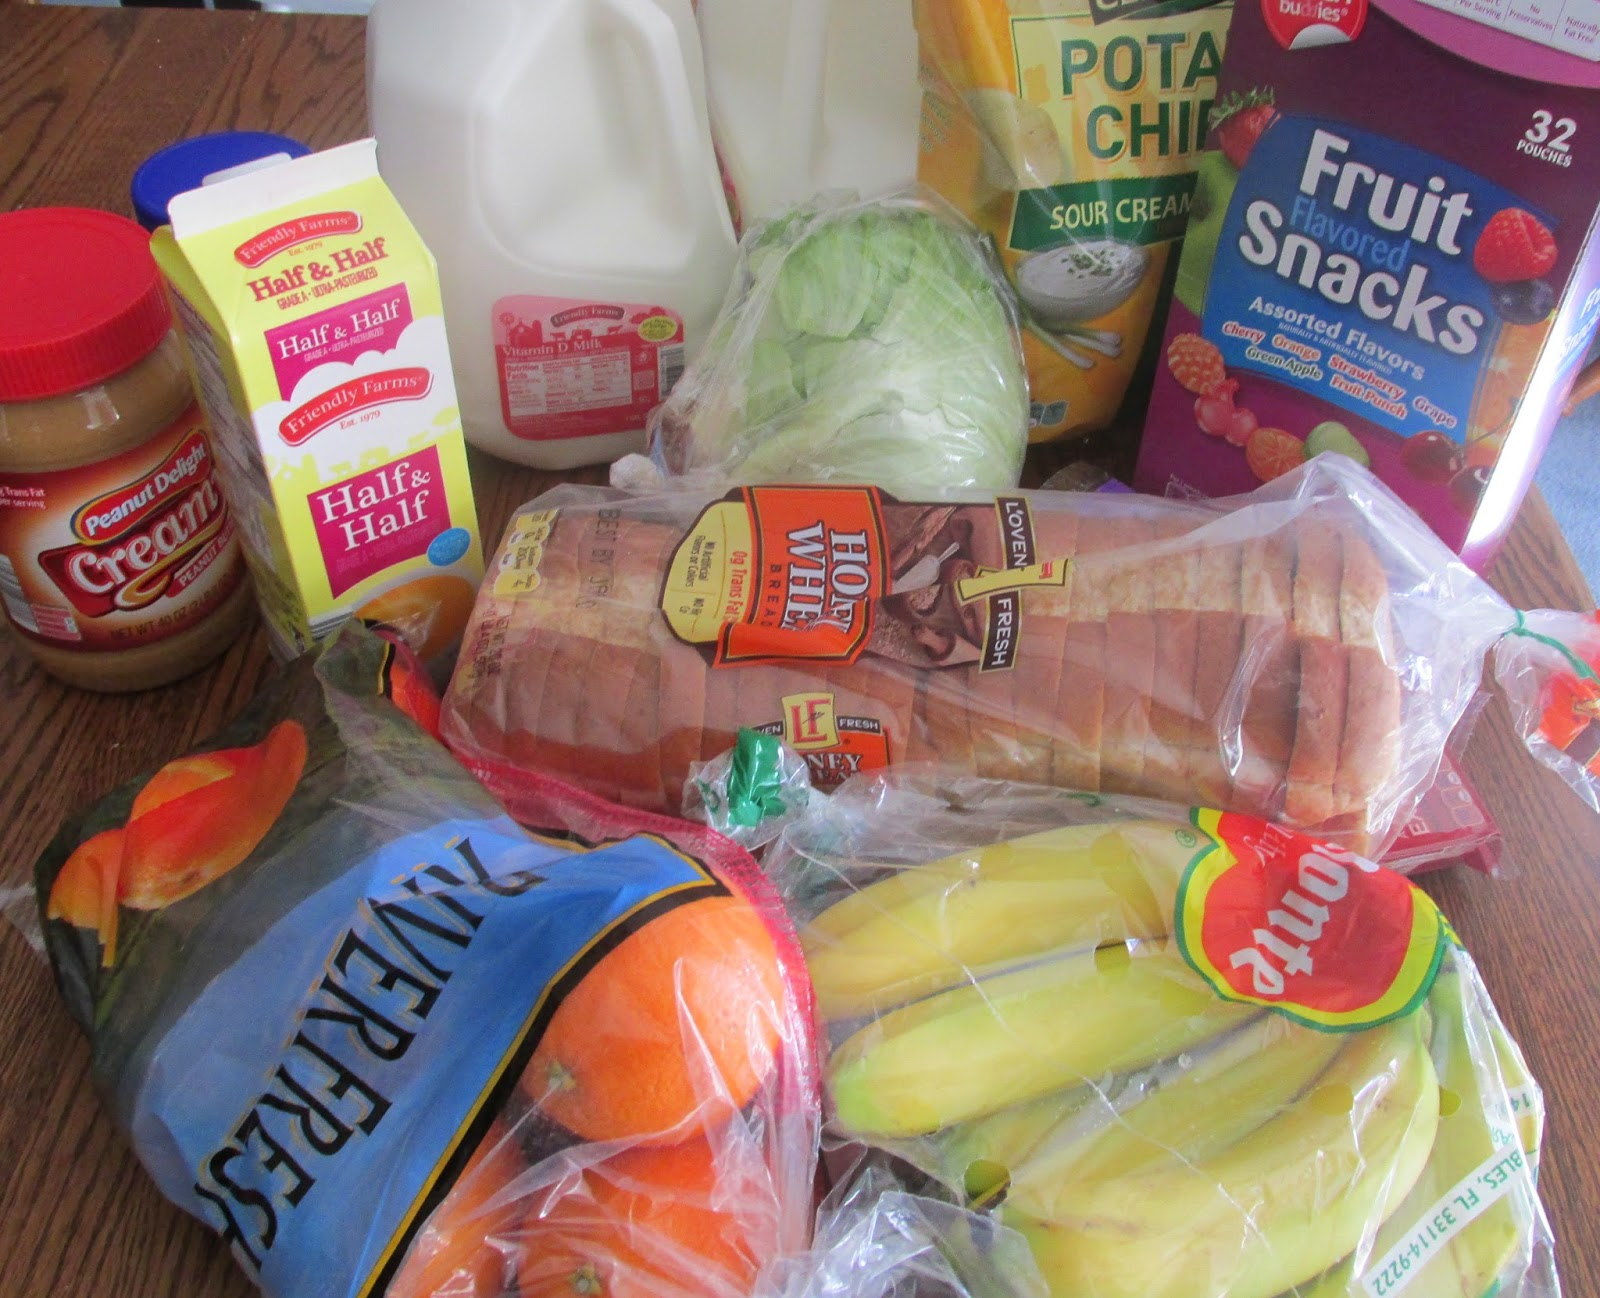 Picture of groceries from Aldi's